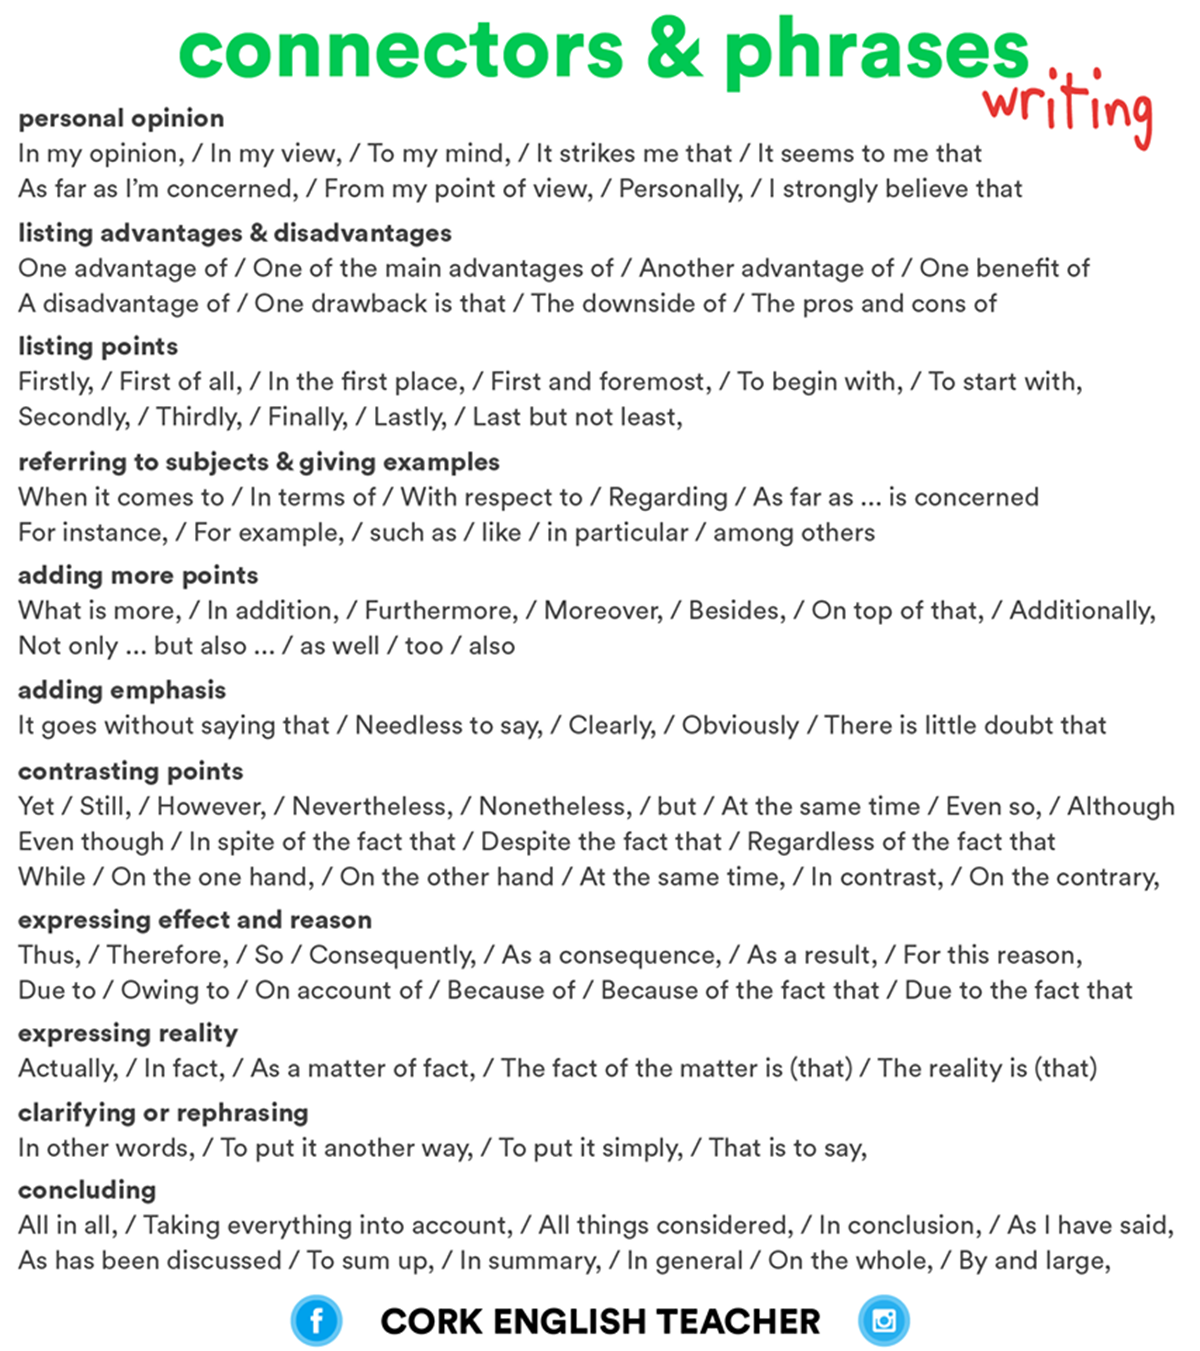 filipino slang words essay Definition, usage and a list of slang examples in common speech and literature slangs are words that are not a part of standard vocabulary or language and are used.